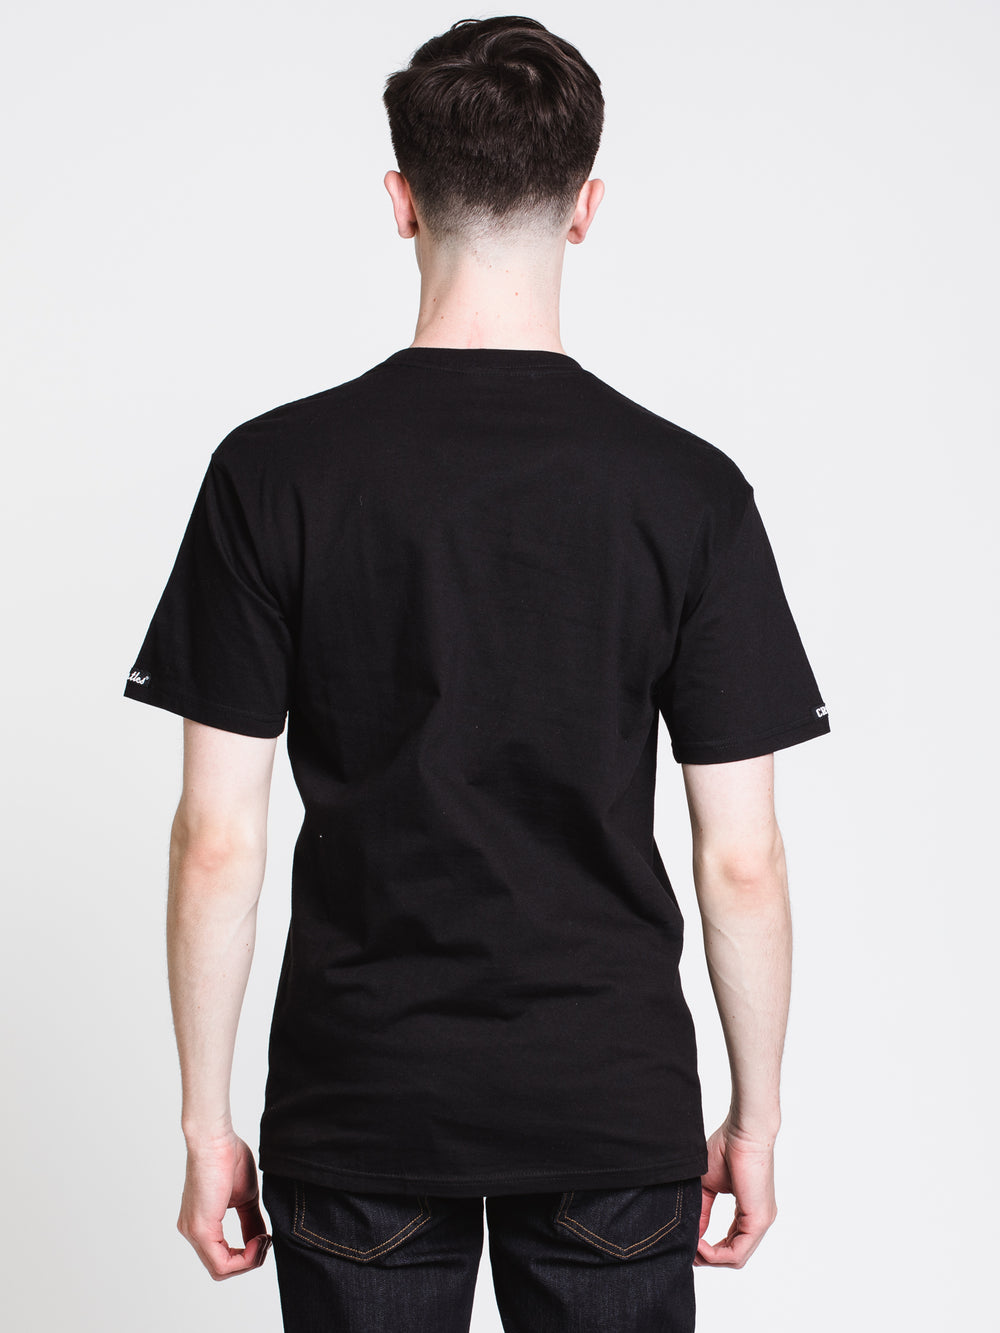 MENS TRIANGLE CHAIN SHORT SLEEVE T-SHIRT - BLACK